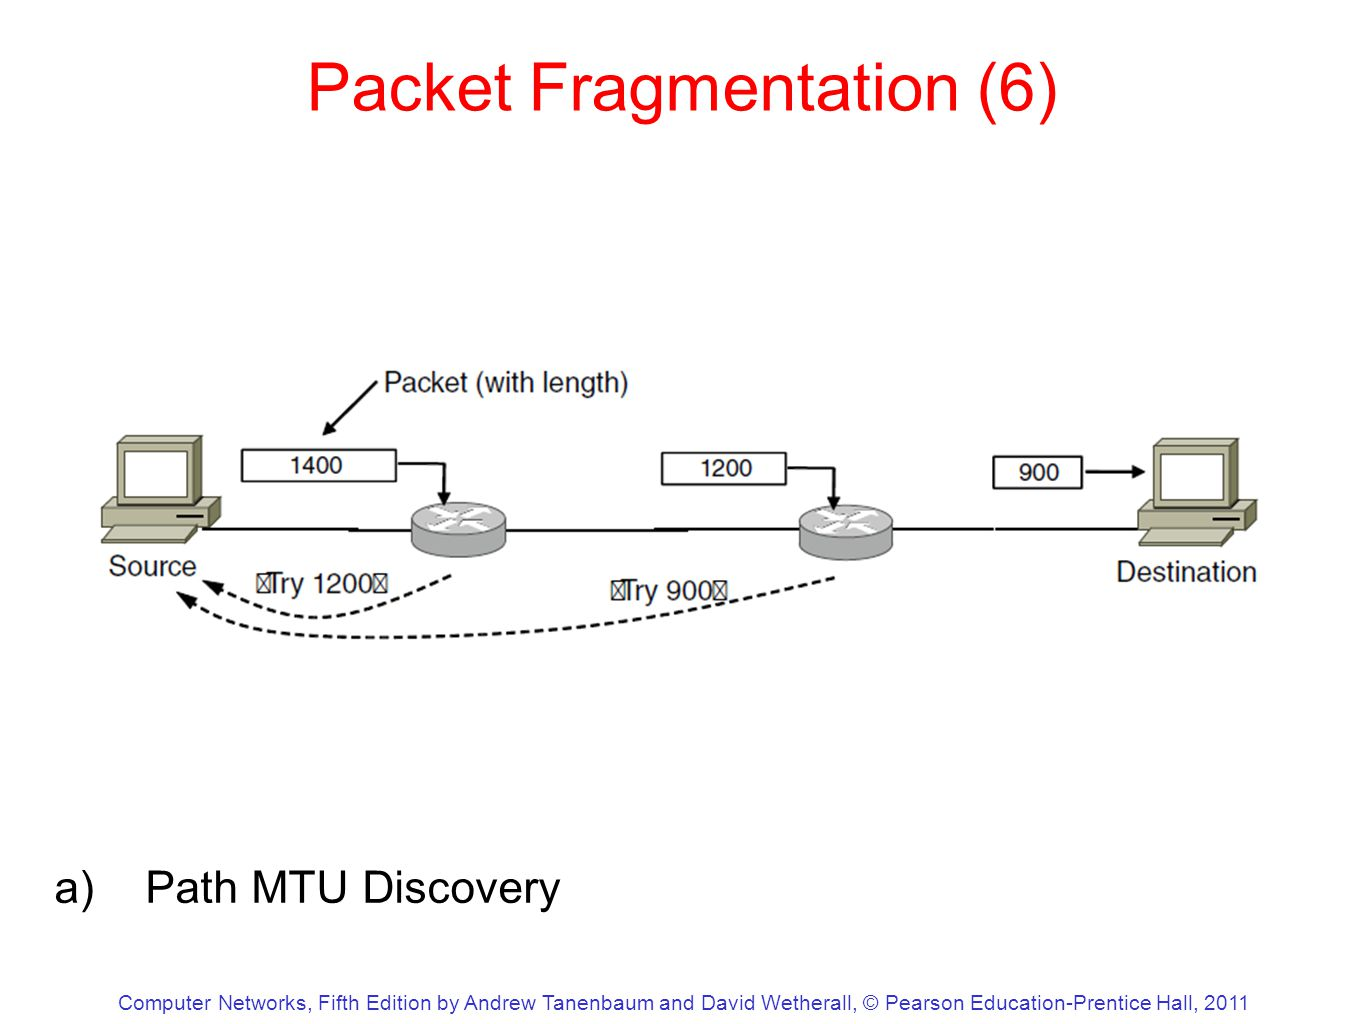 Computer Networks, Fifth Edition by Andrew Tanenbaum and David Wetherall, © Pearson Education-Prentice Hall, 2011 Packet Fragmentation (6) a)Path MTU Discovery